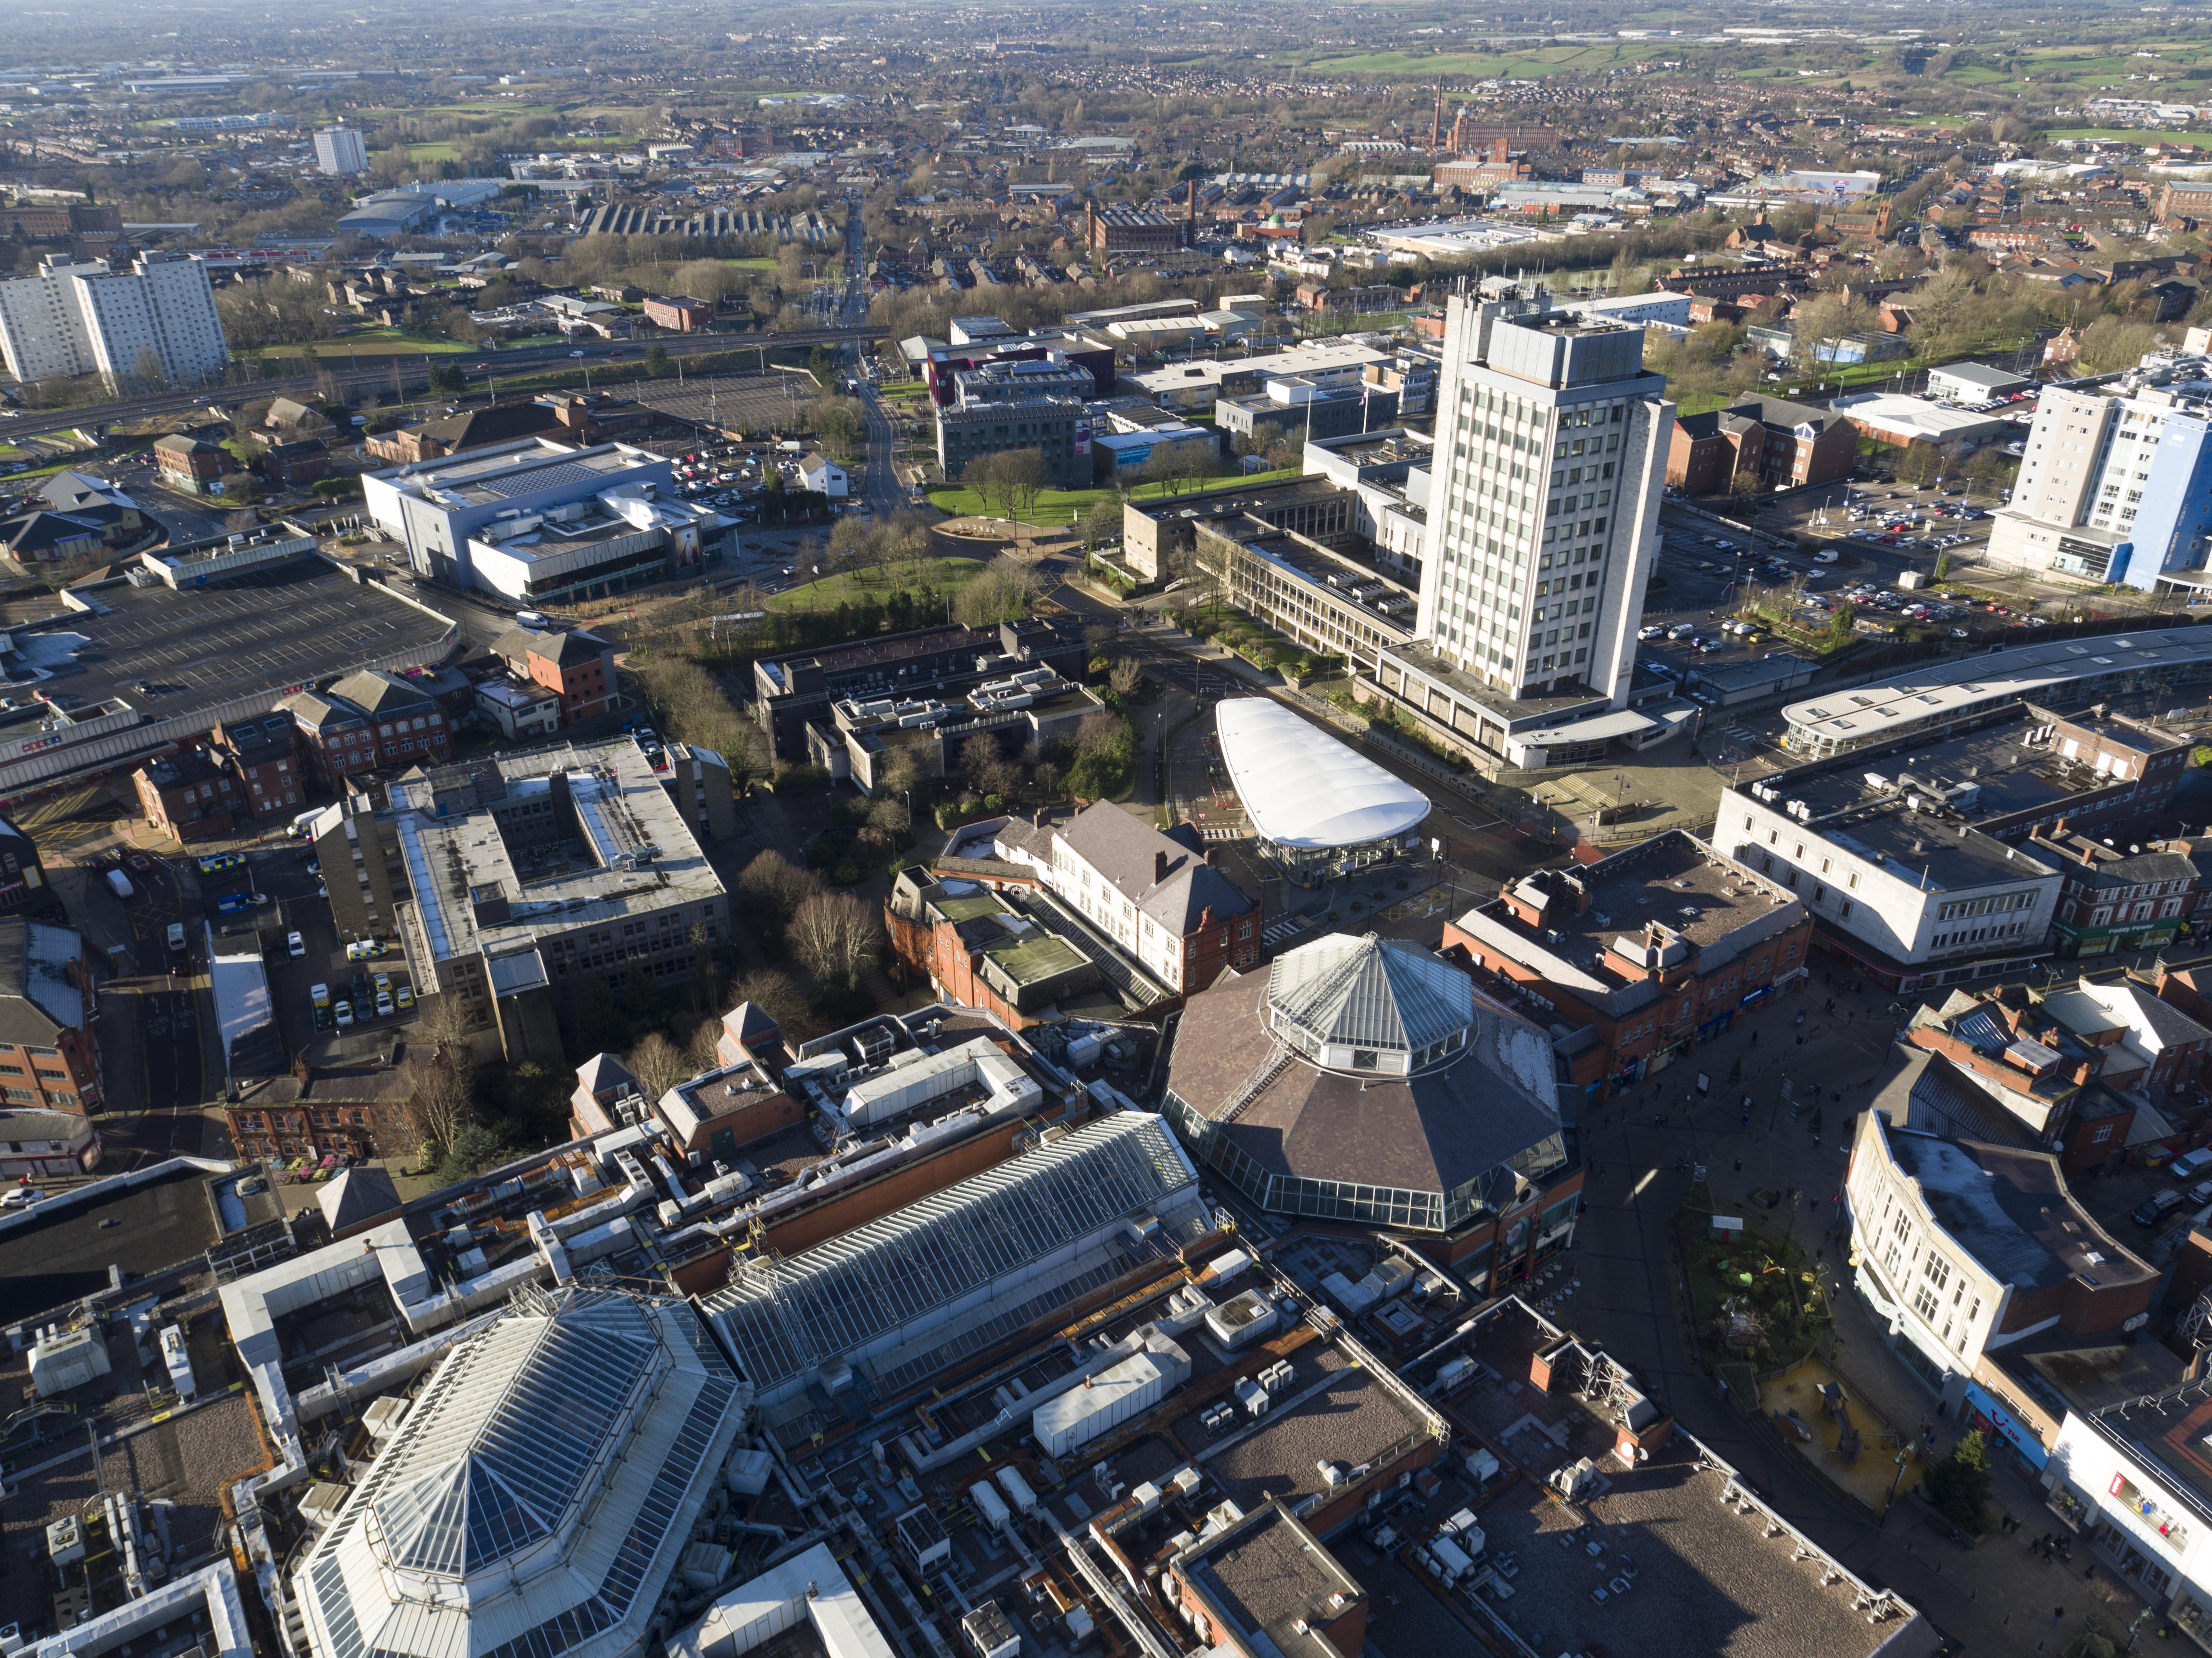 Oldham town centre aerial view